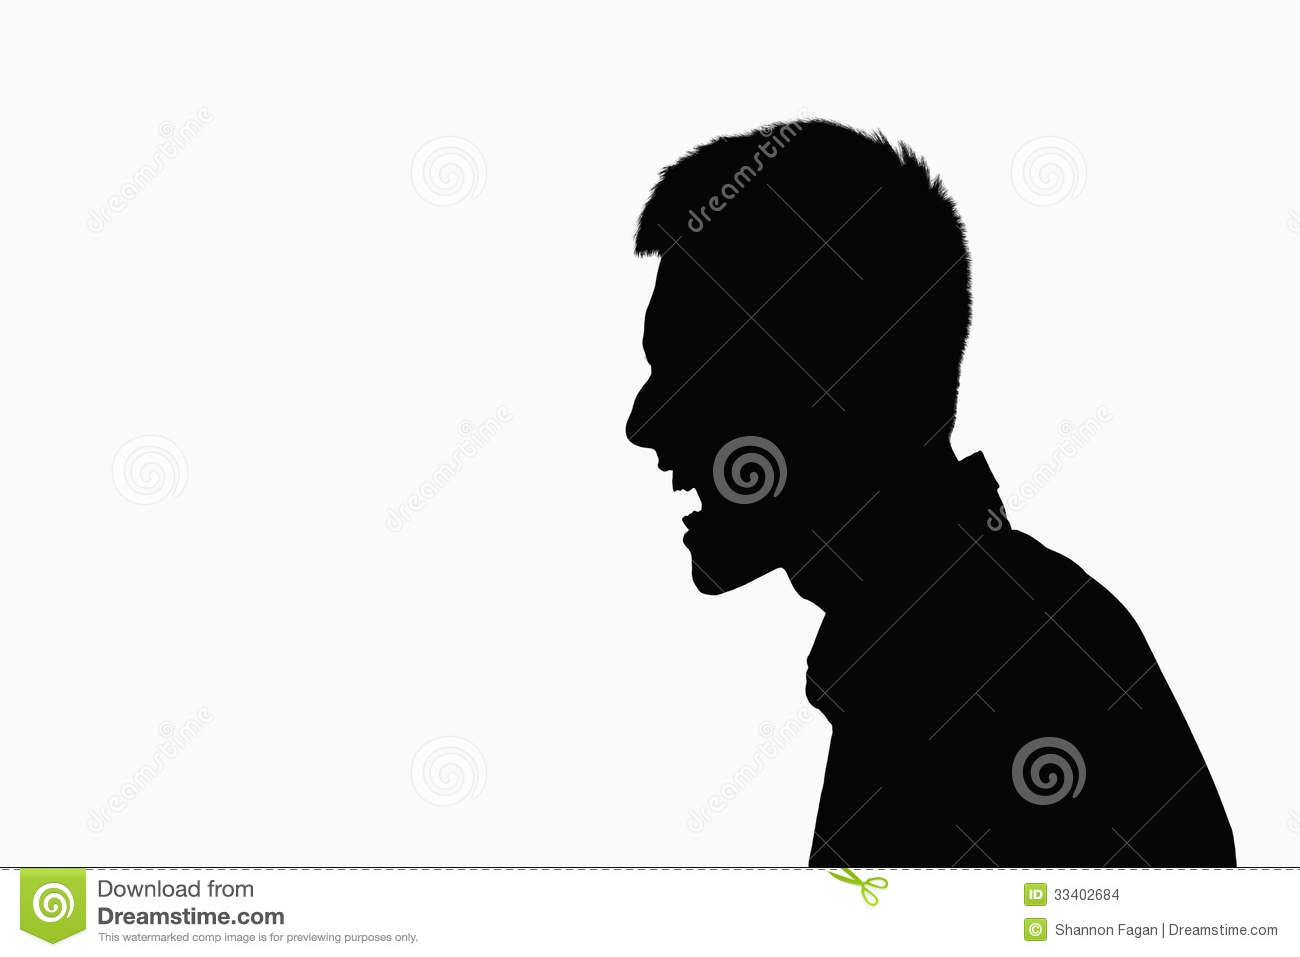 Silhouette Of Man Screaming. Stock Images - Image: 33402684